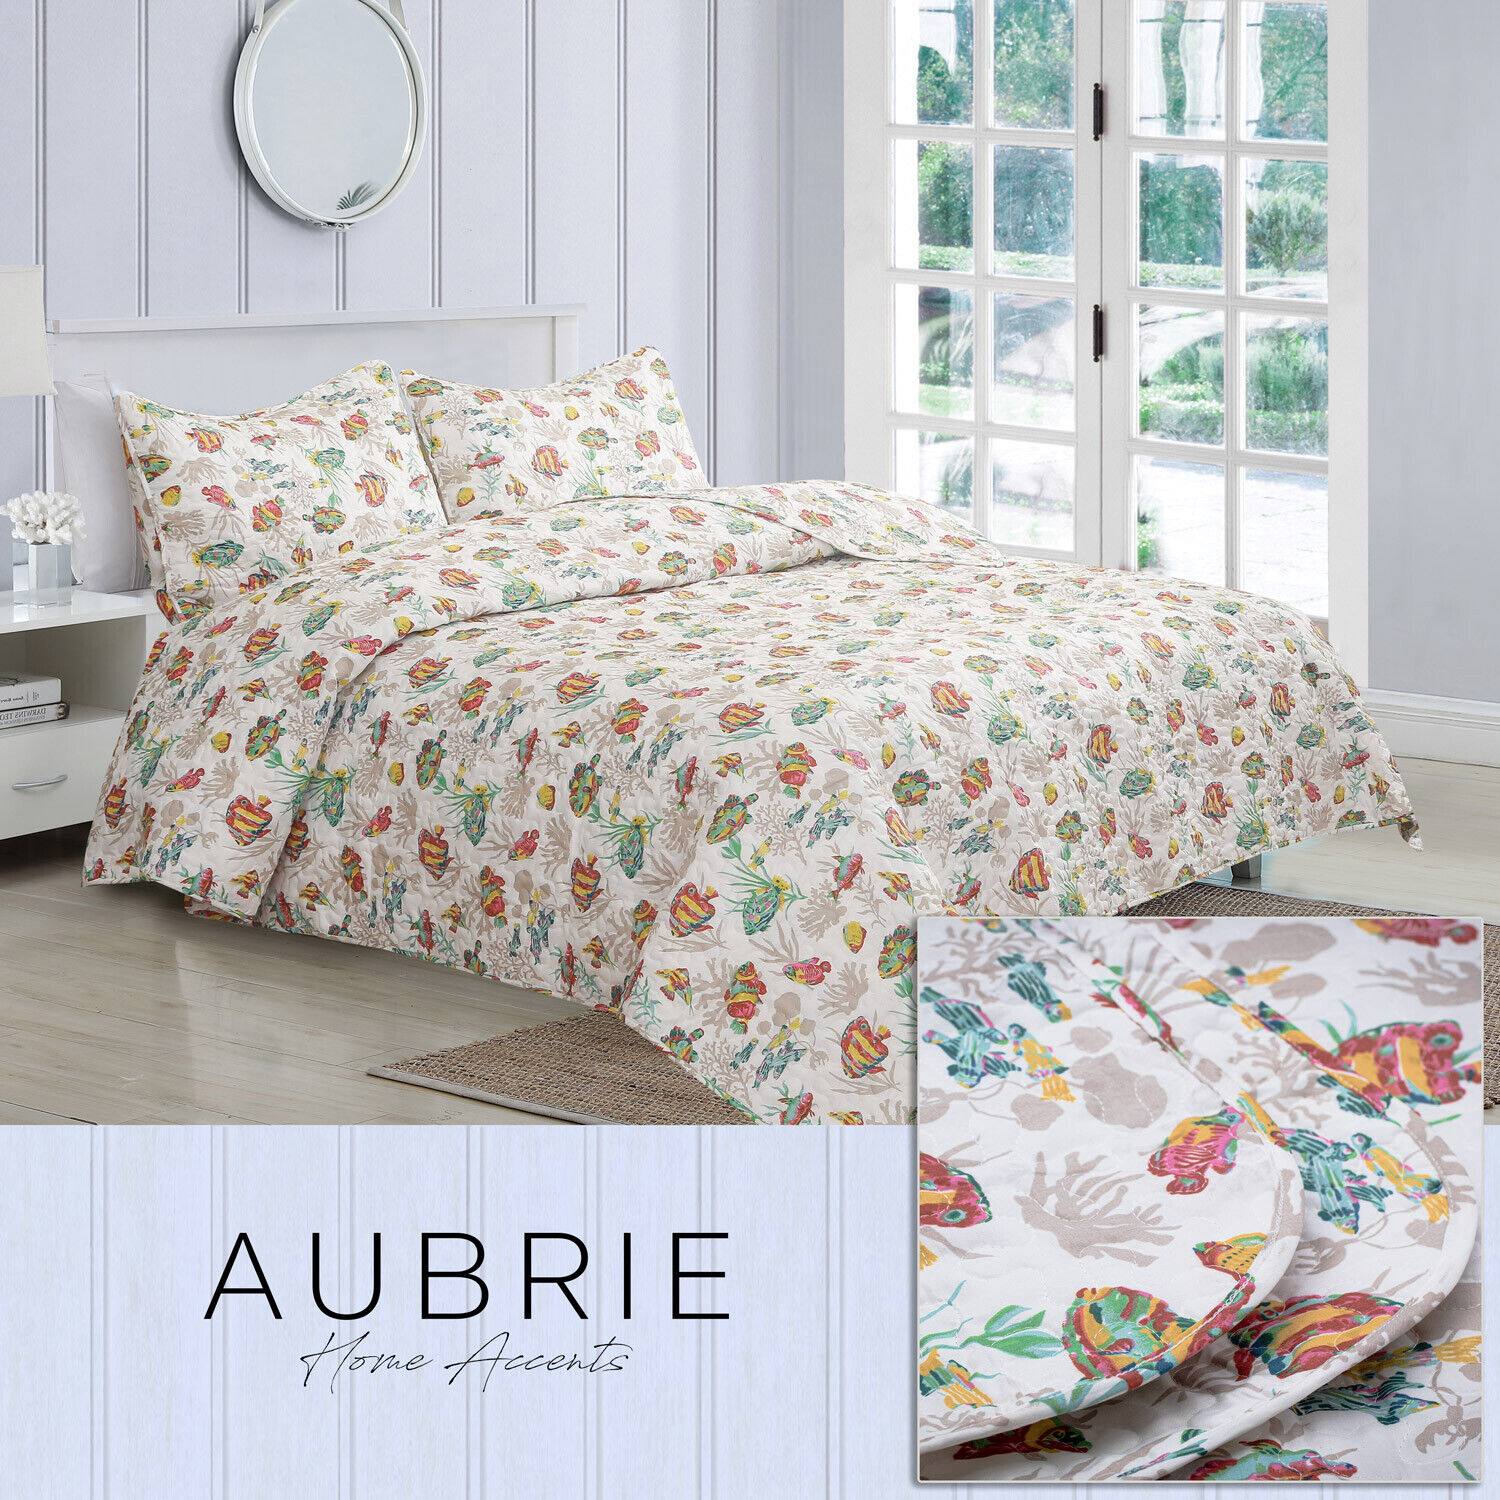 Twin, Full/Queen, or King School of Fish Quilt Bedding Set, White Green Yellow Bedding